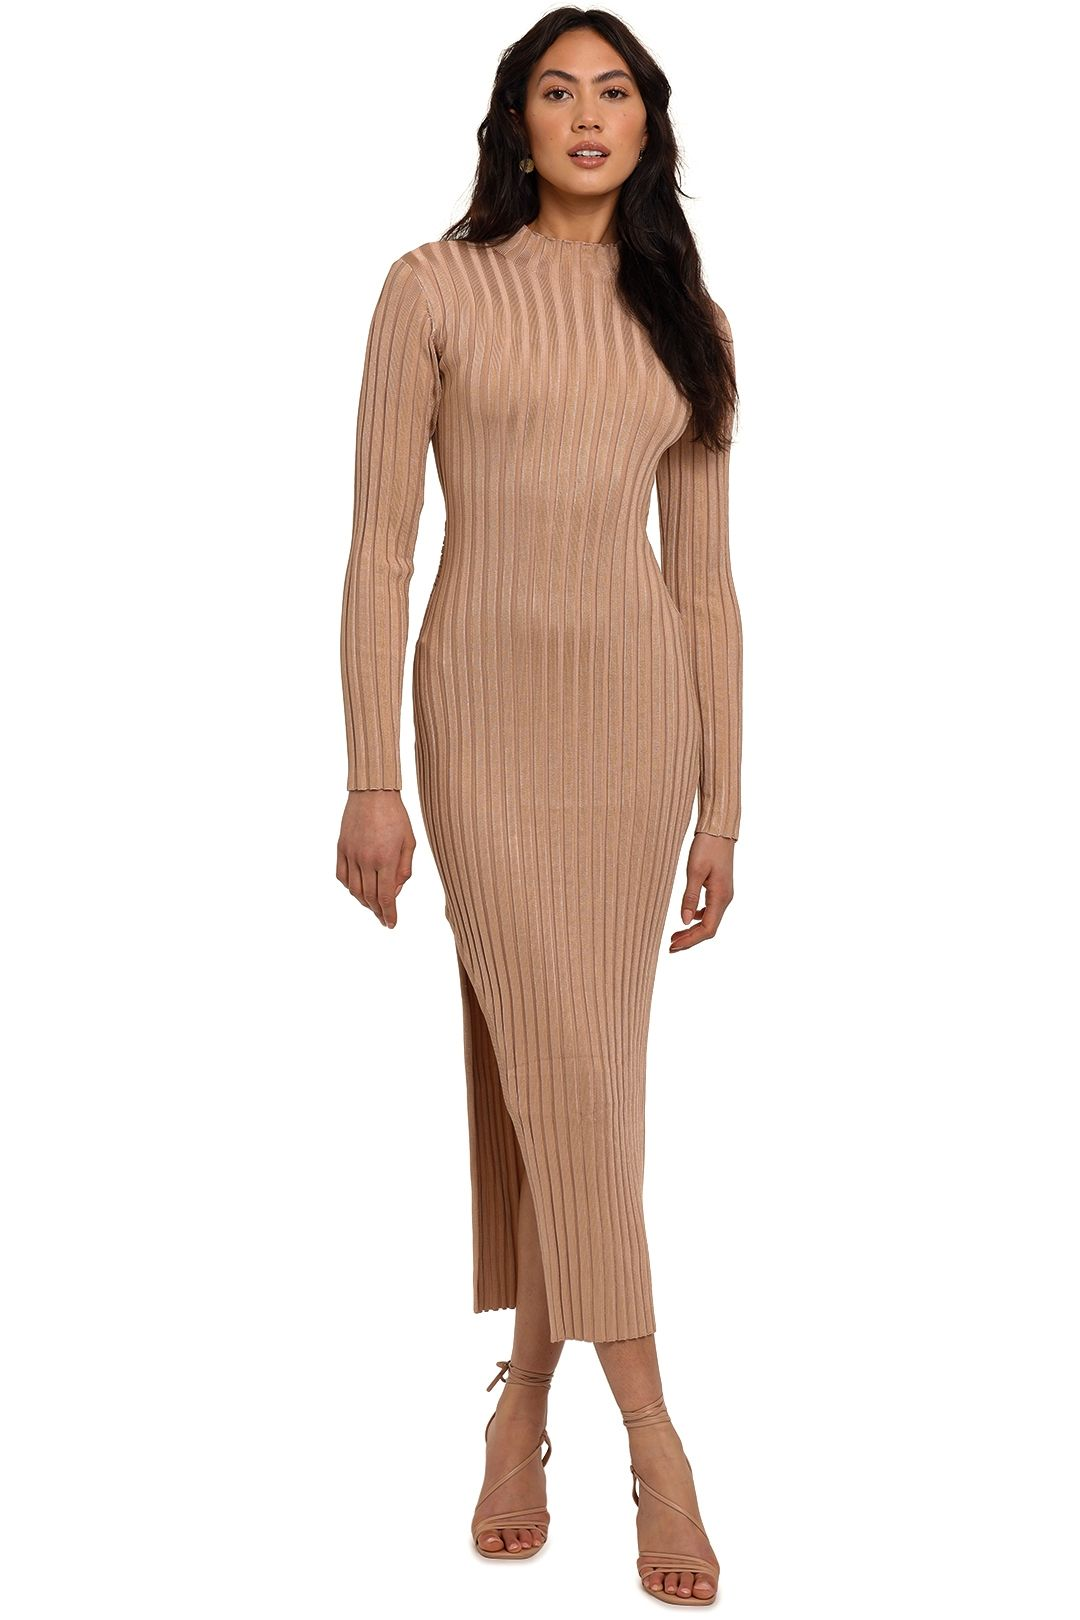 Significant Other Sylvia Knit Dress Champagne midi